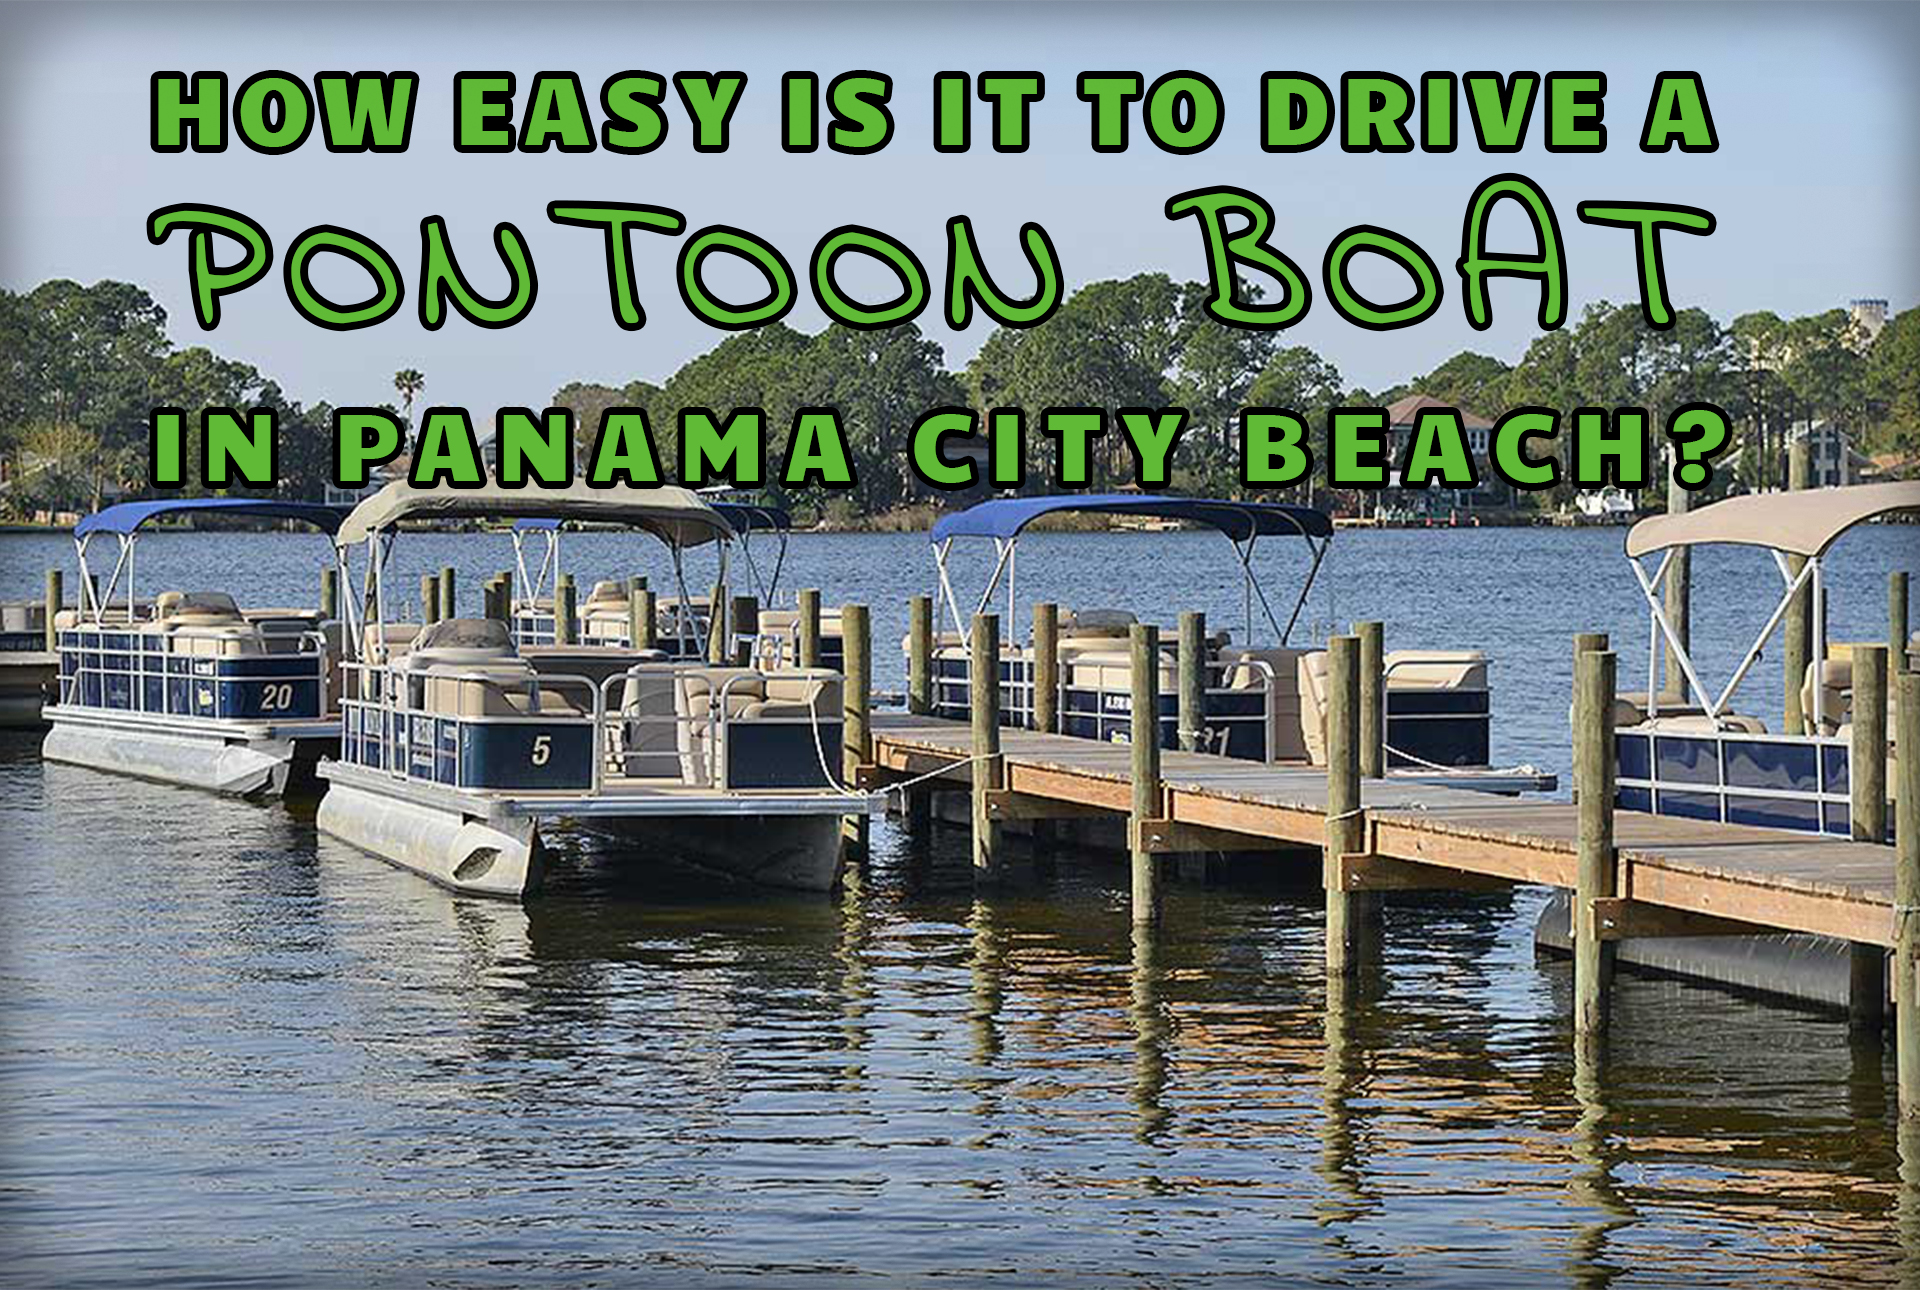 """""""How Easy is it to Drive a Pontoon Boat in Panama City Beach?"""" over a dock full of pontoons"""